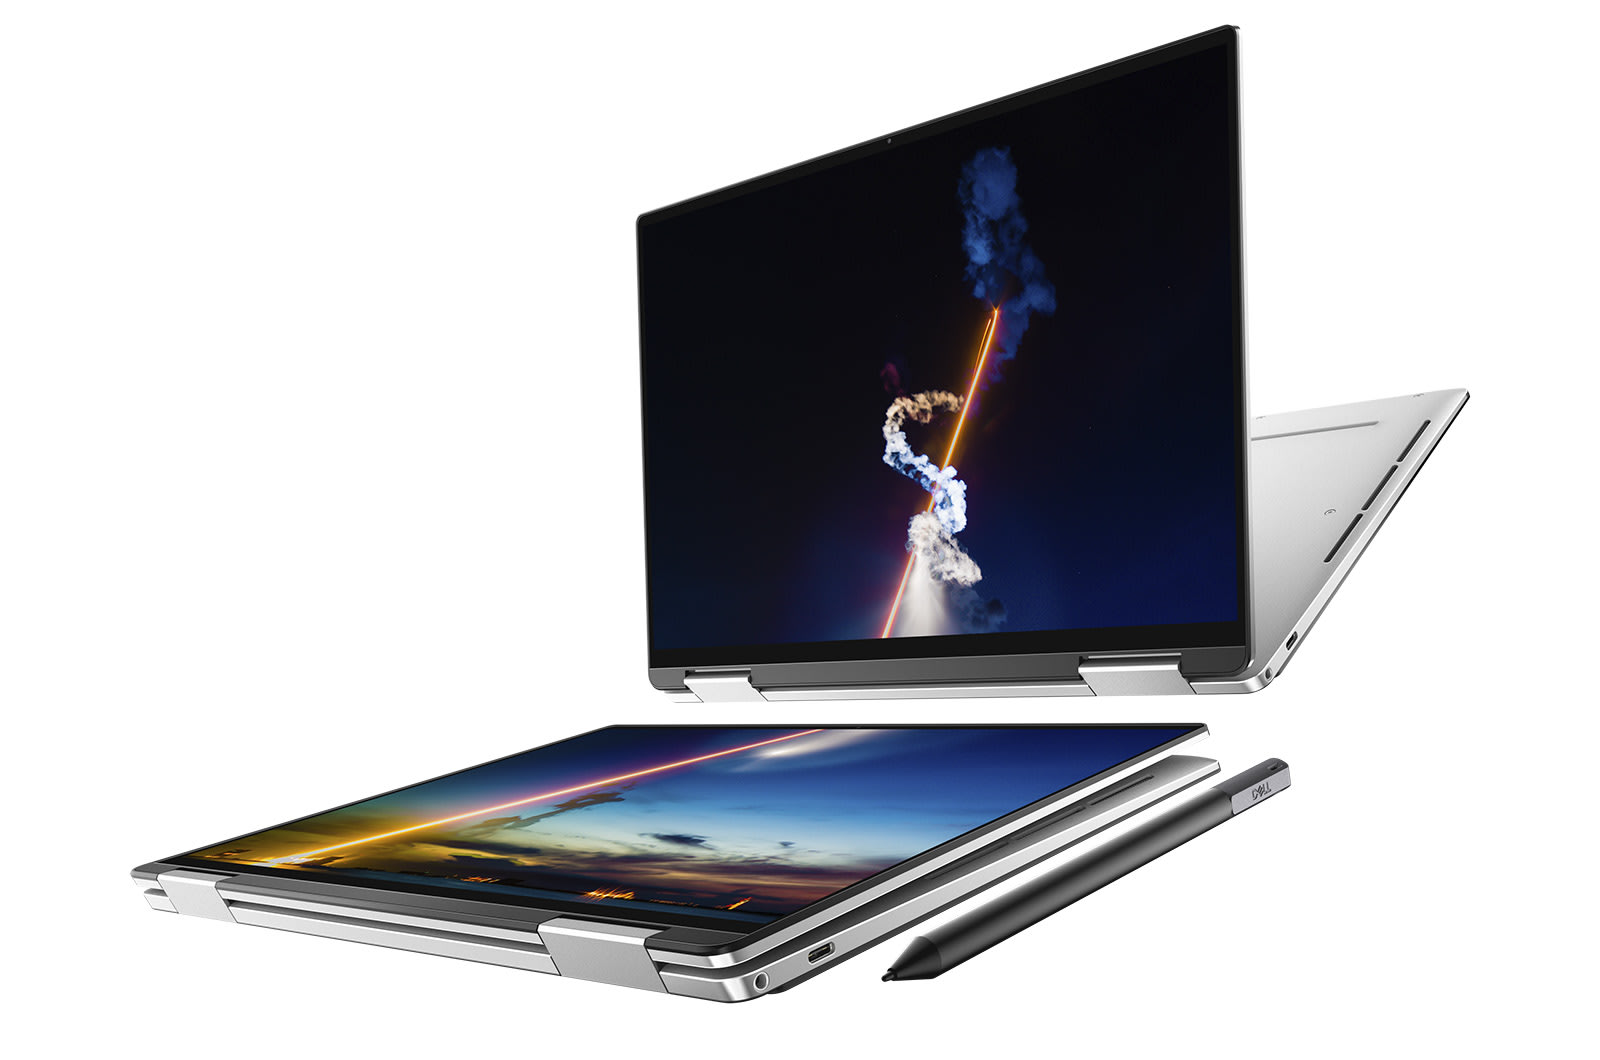 XPS 13 7000 Series 2-in-1 Touch Notebook